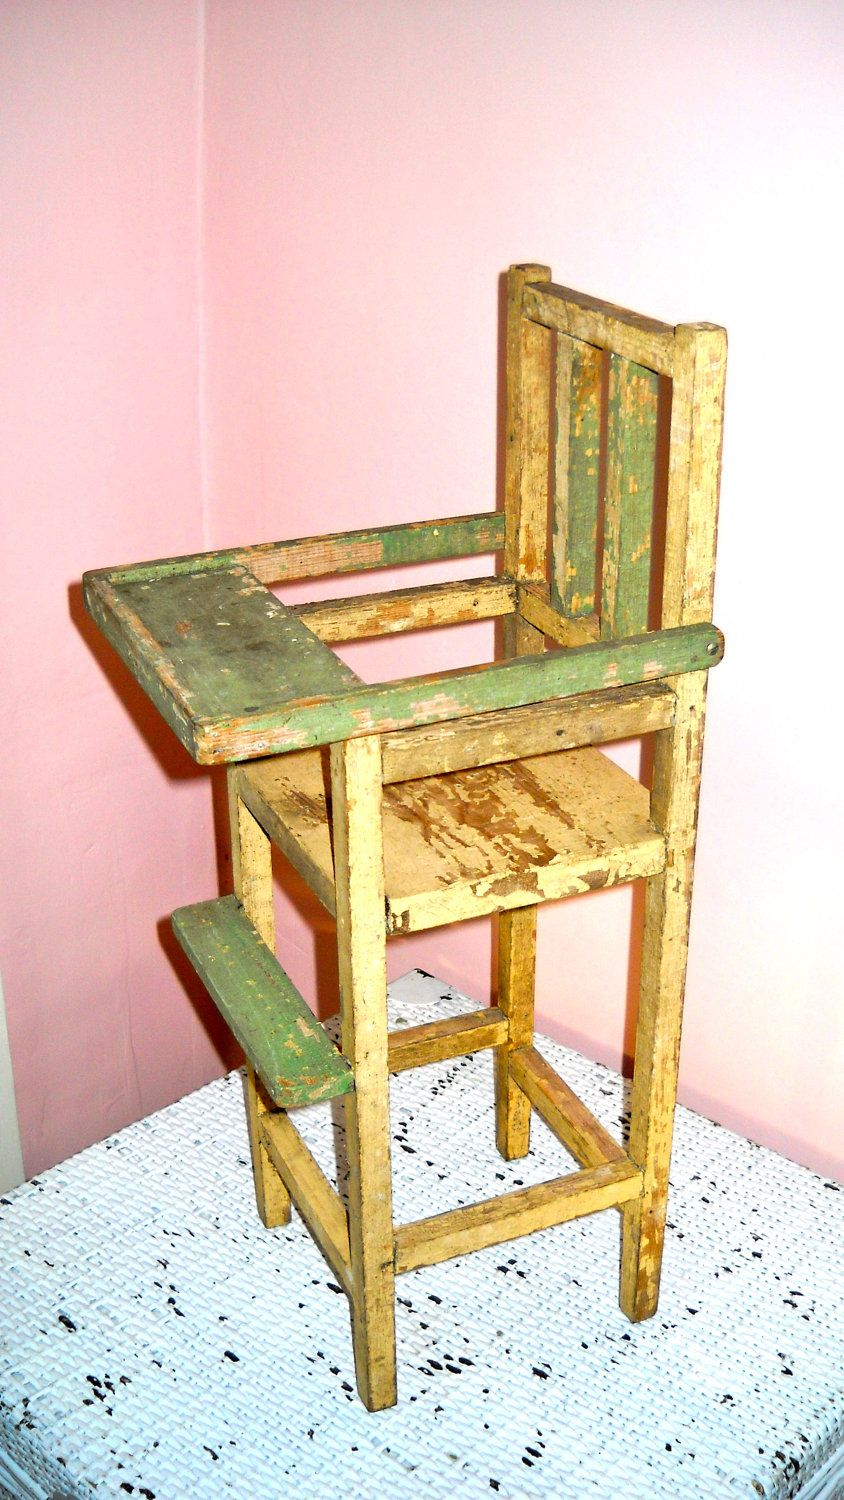 Vintage Toy Doll Large Wooden High Chair with Moveable Tray 1940's old  school, I always wonder how they did stuff back in the day, kids are not  easy - Doll High Chair With Movable Tray. Doll Accessories. Vintage 1940's